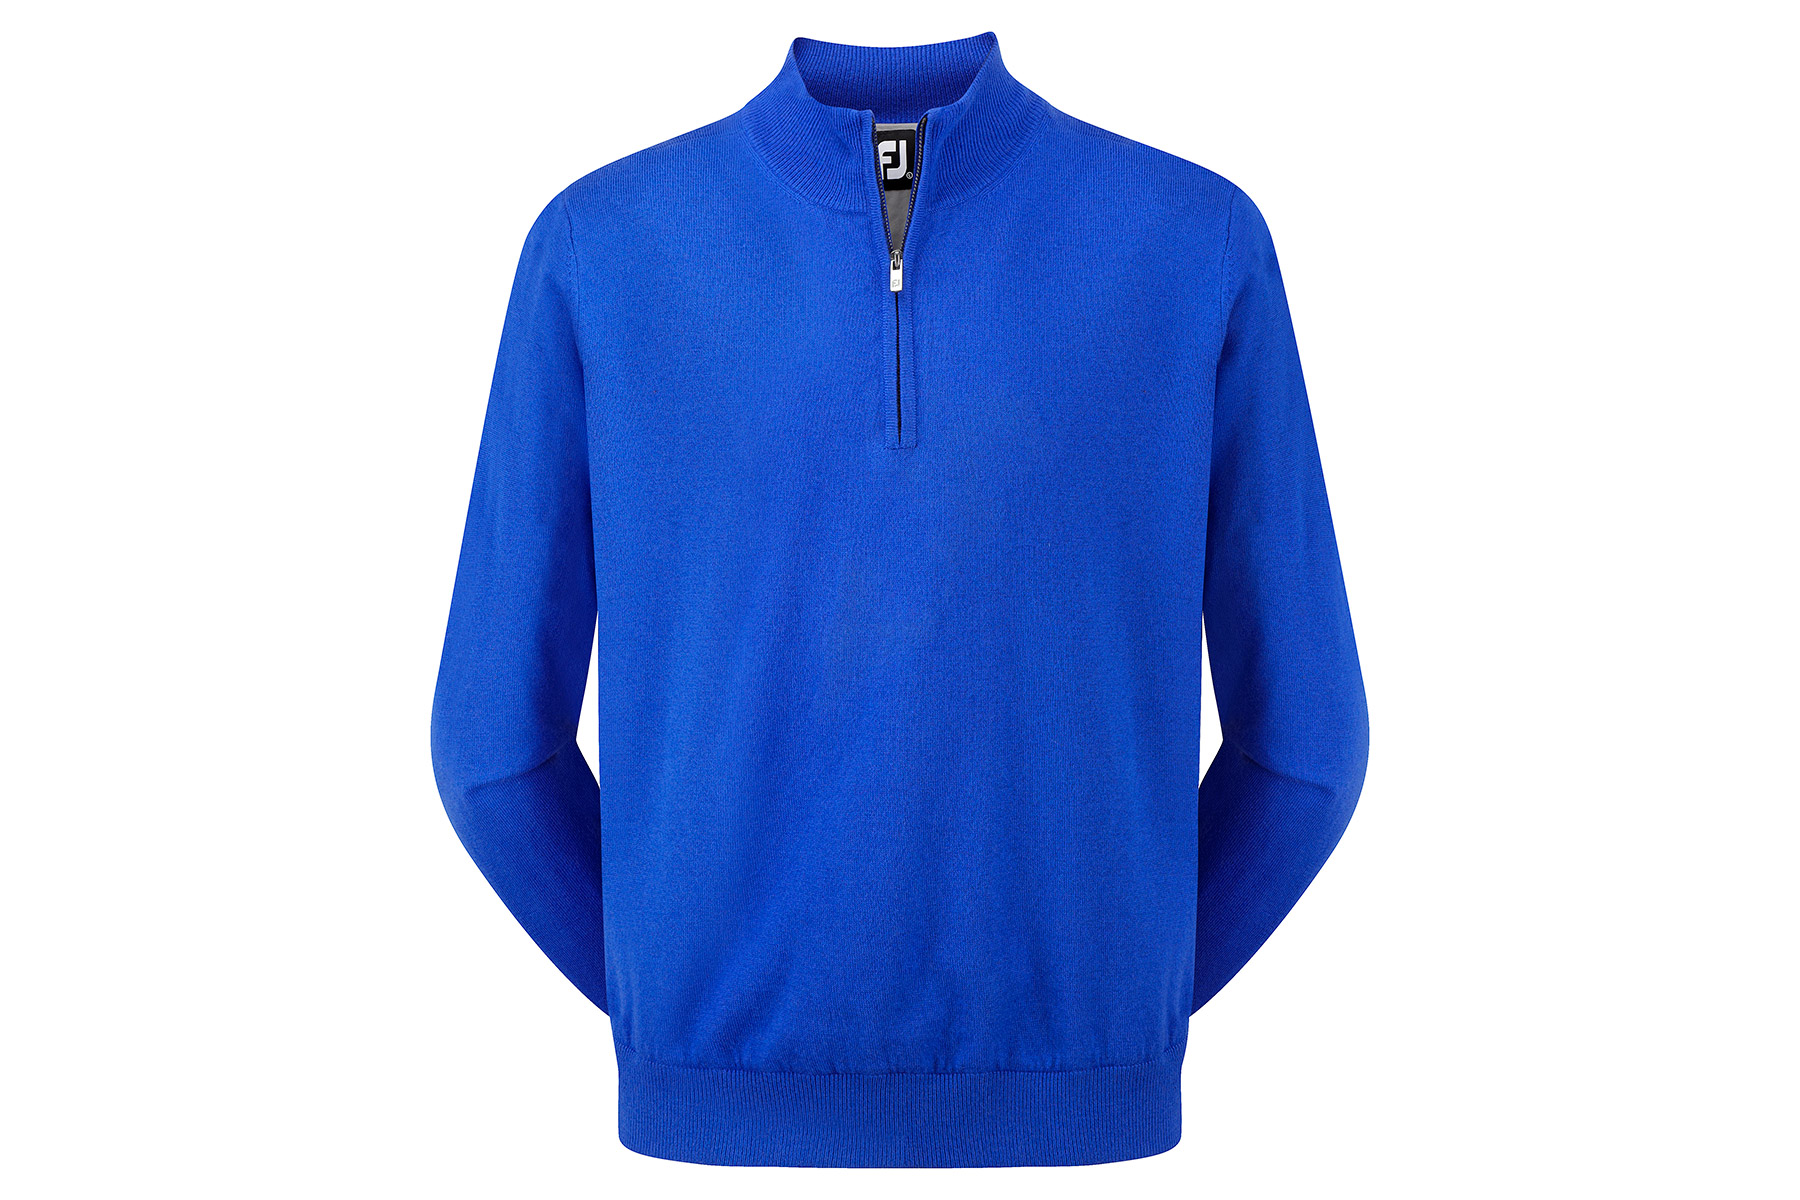 Footjoy lambswool lined 1 2 zip sweater from american golf for Housse zip collection captur